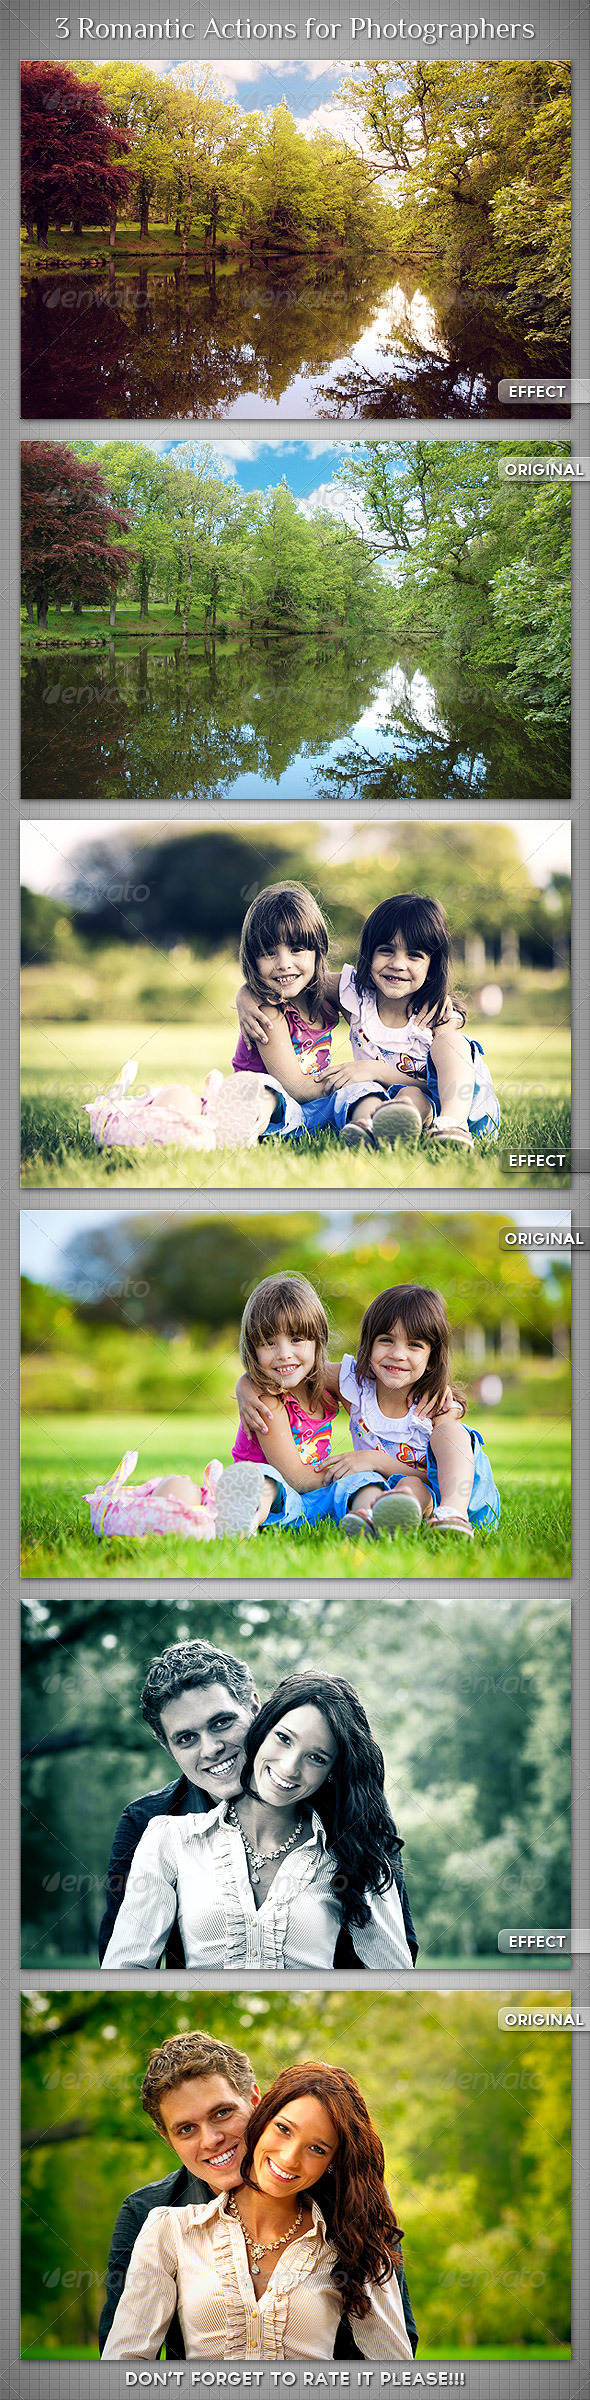 3 Romantic Actions for Photographers - Photo Effects Actions